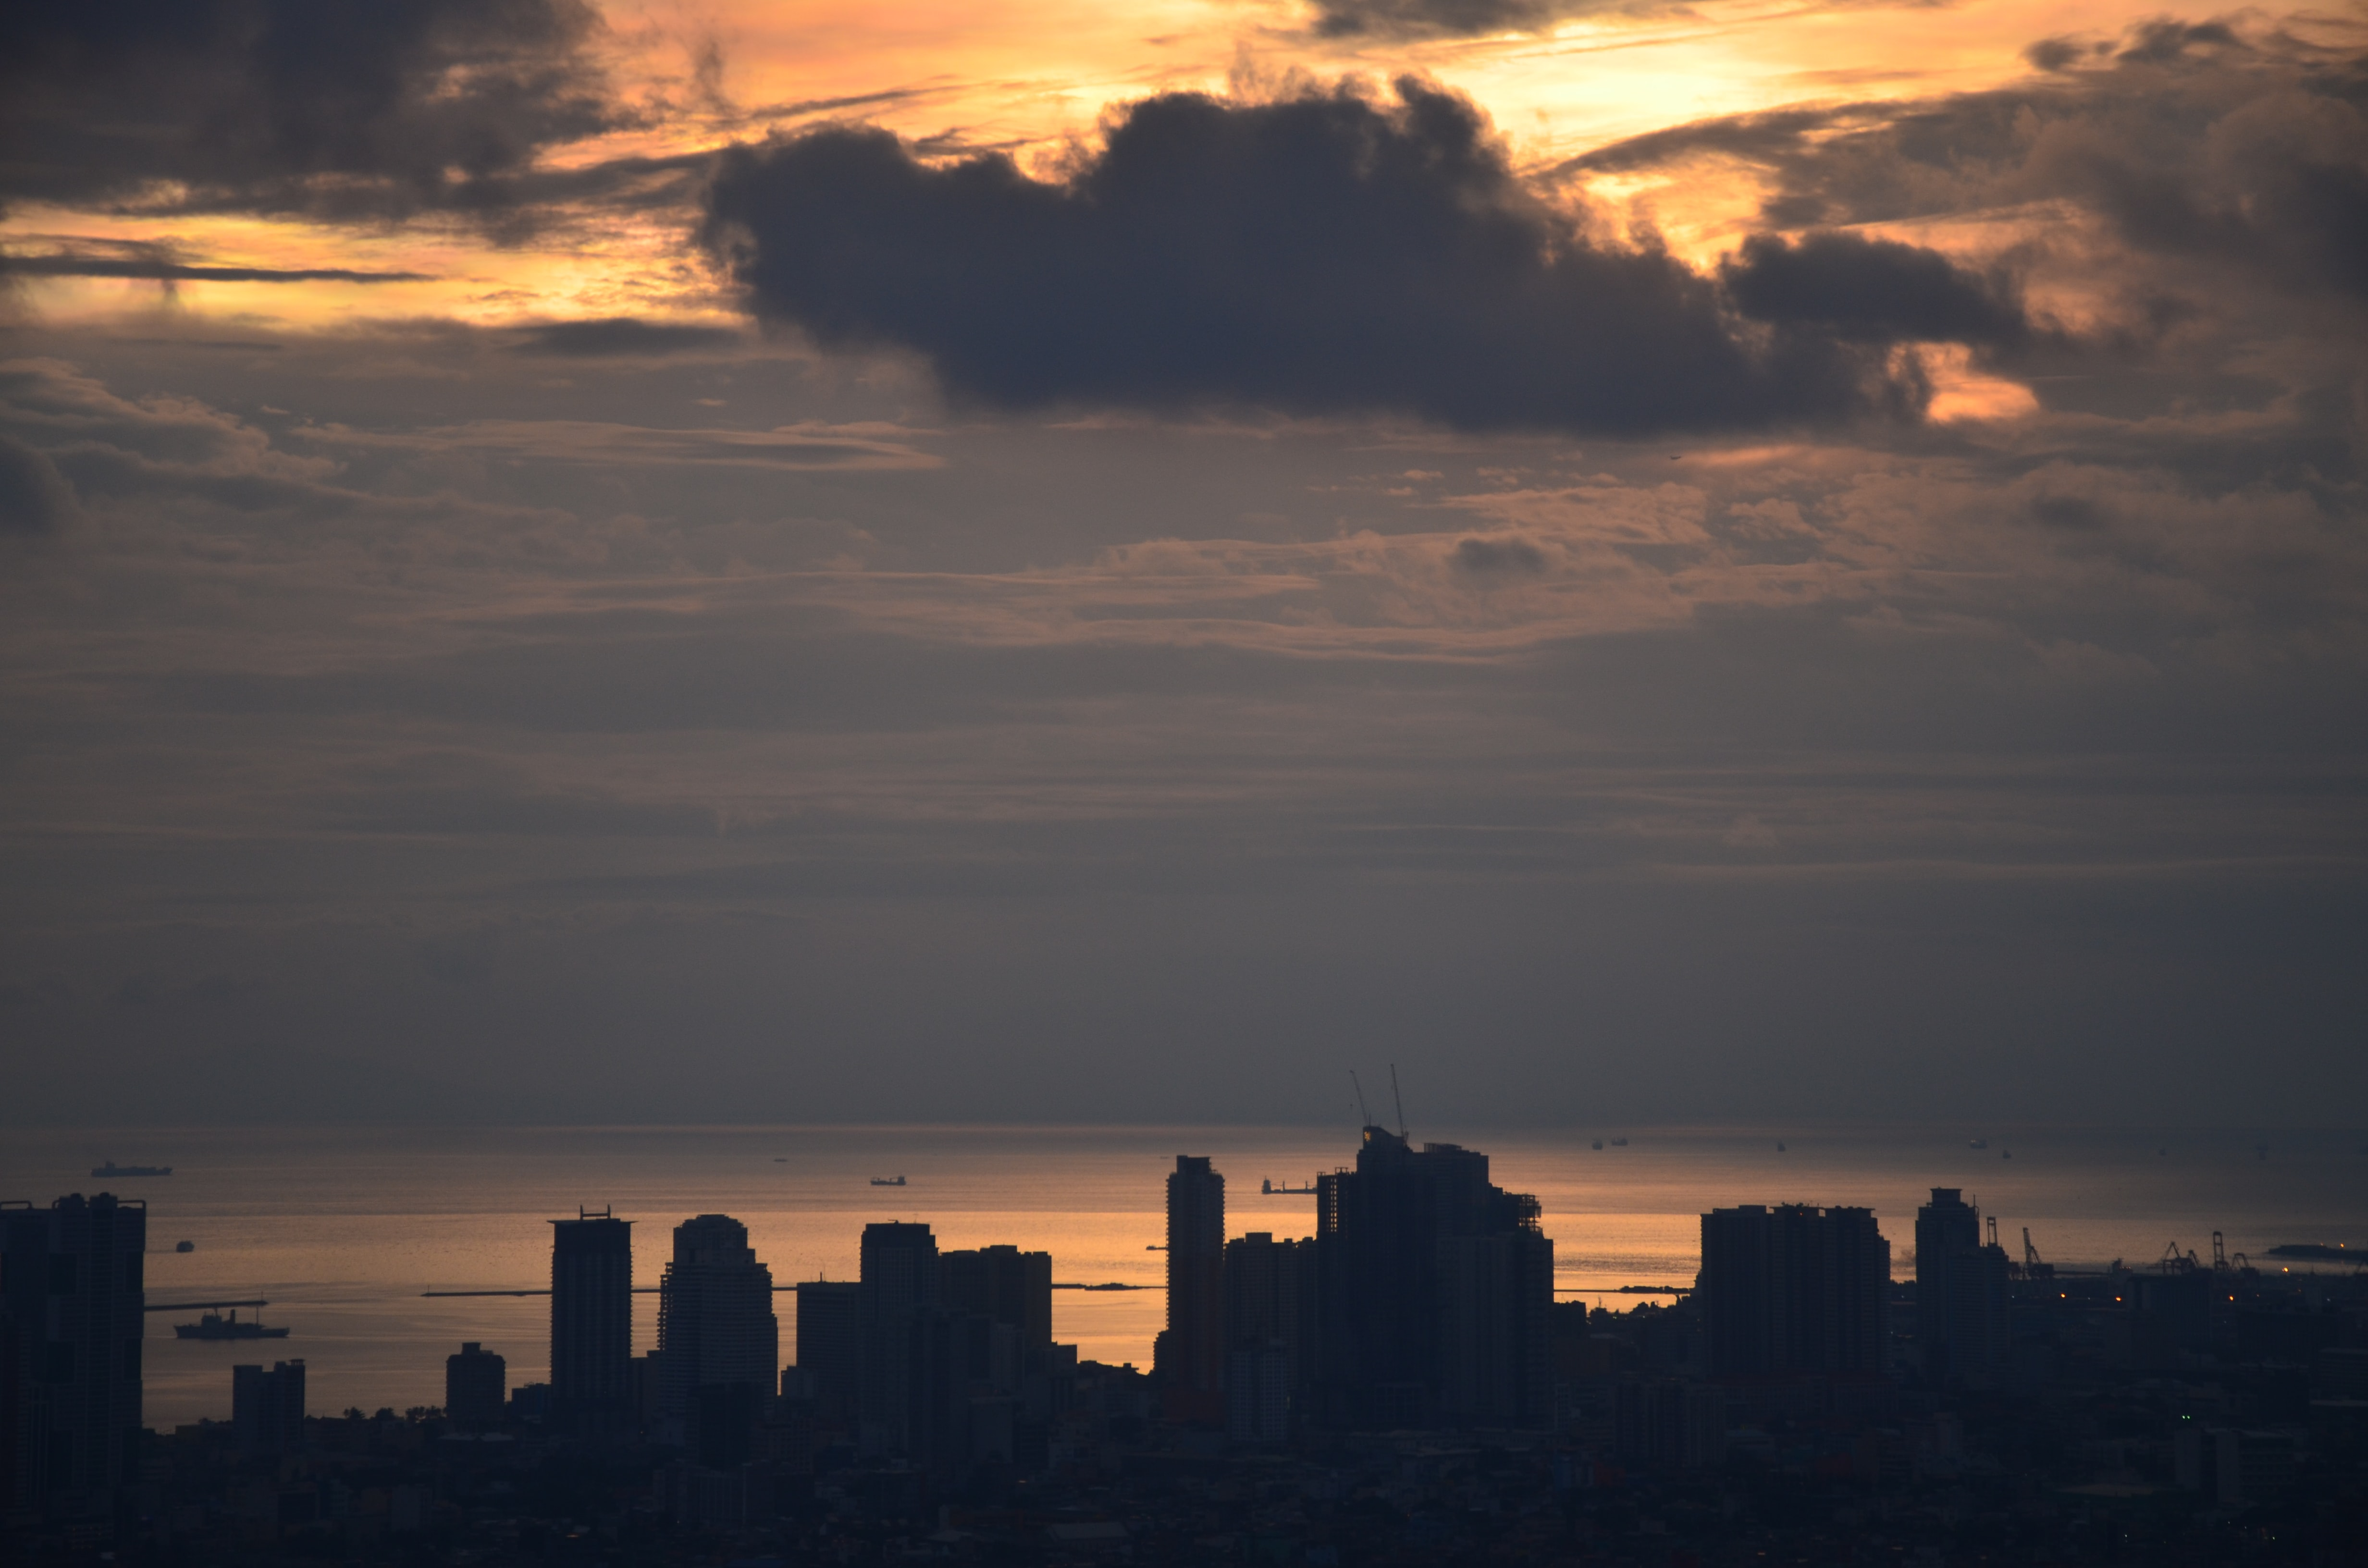 silhouette of buildings under gray clouds during golden hour